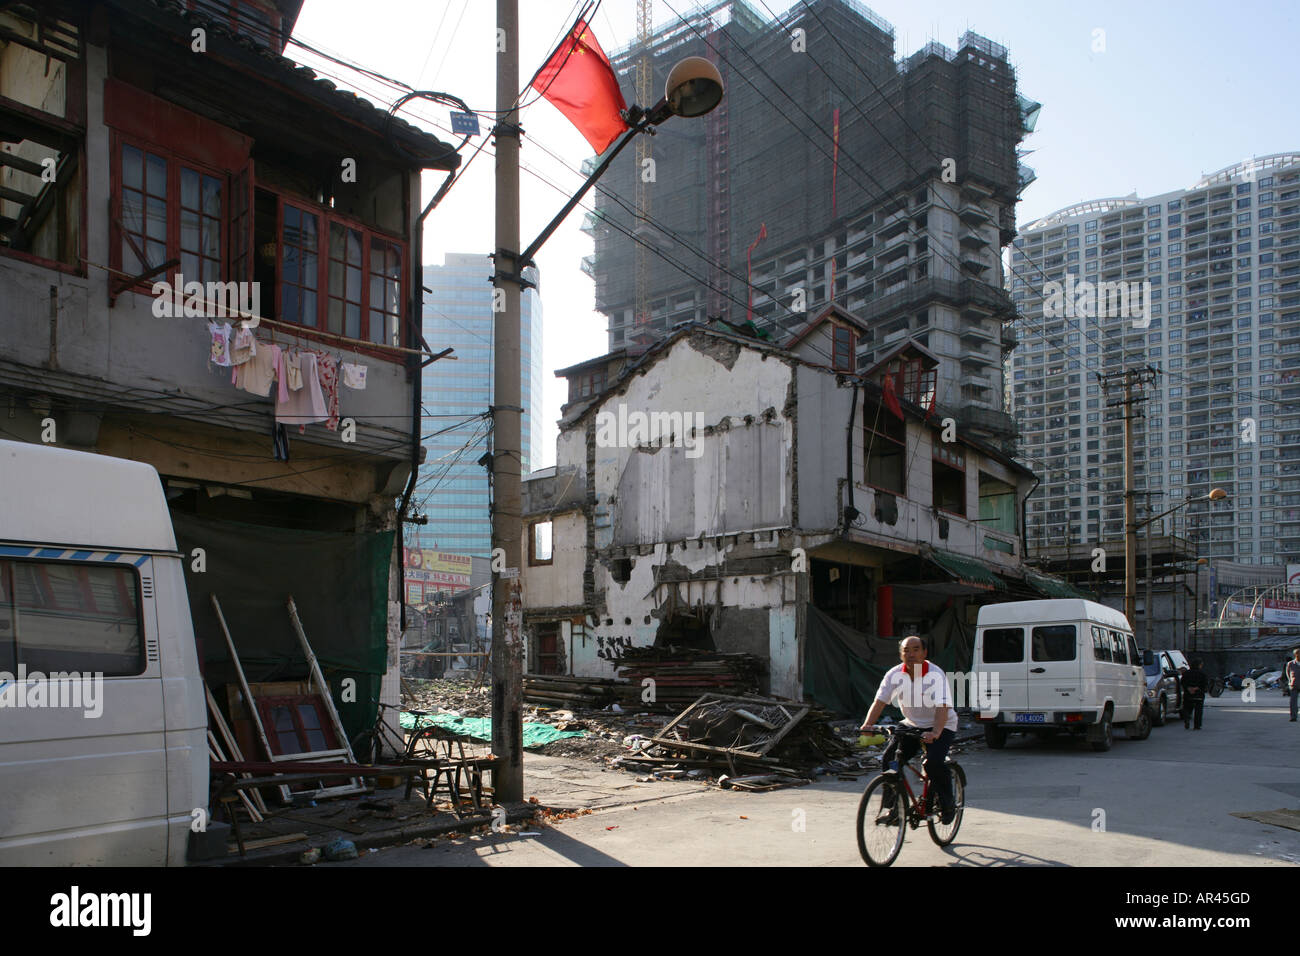 demolition in old town, Lao Xi Men, redevelopment area, Shanghai, China - Stock Image